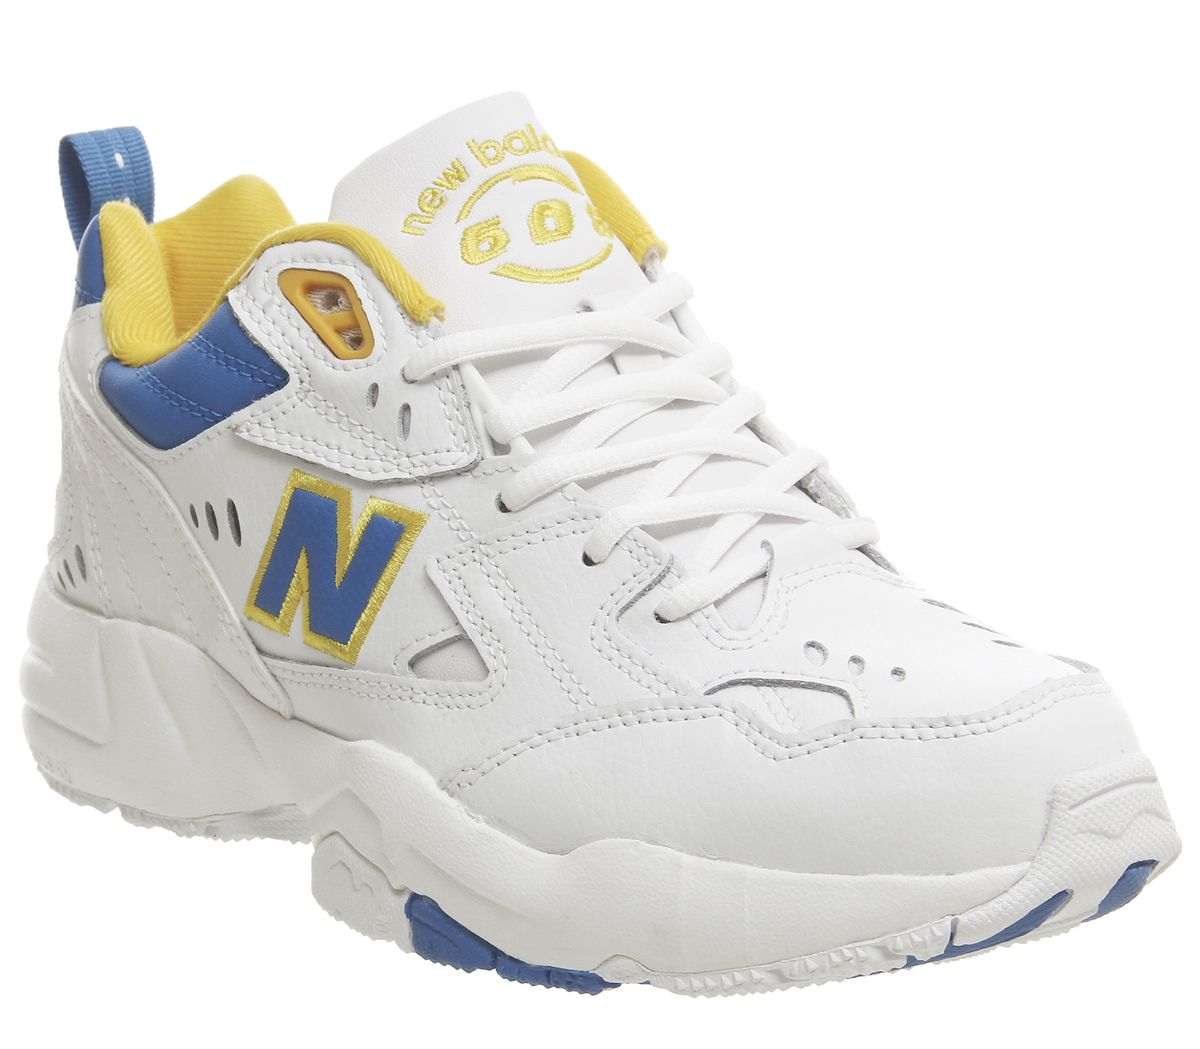 New Balance 608 Trainers White Blue Yellow - Hers trainers ...